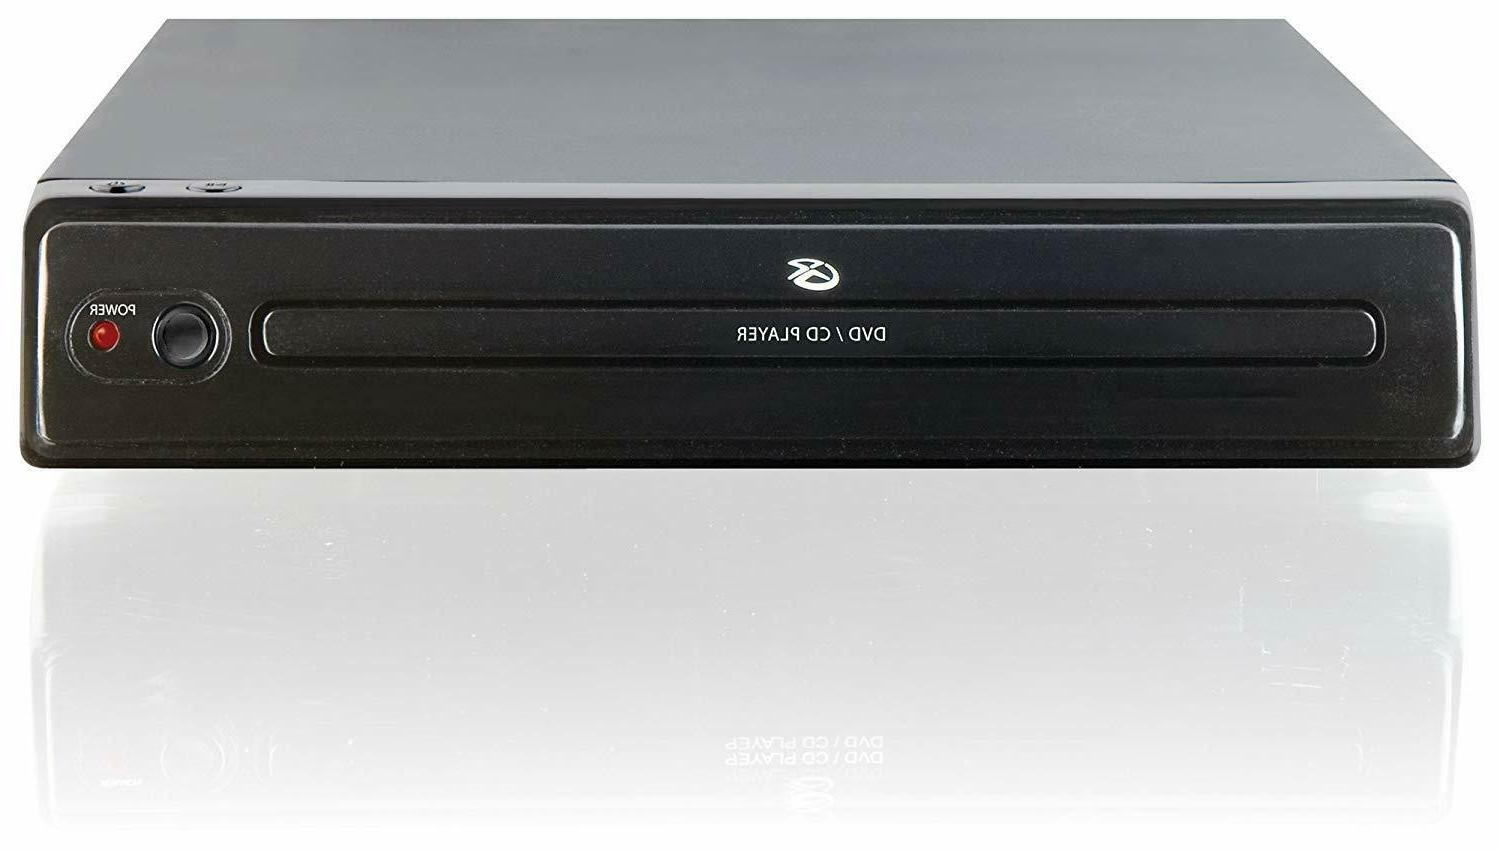 d202b compact progressive scan 2channel dvd player